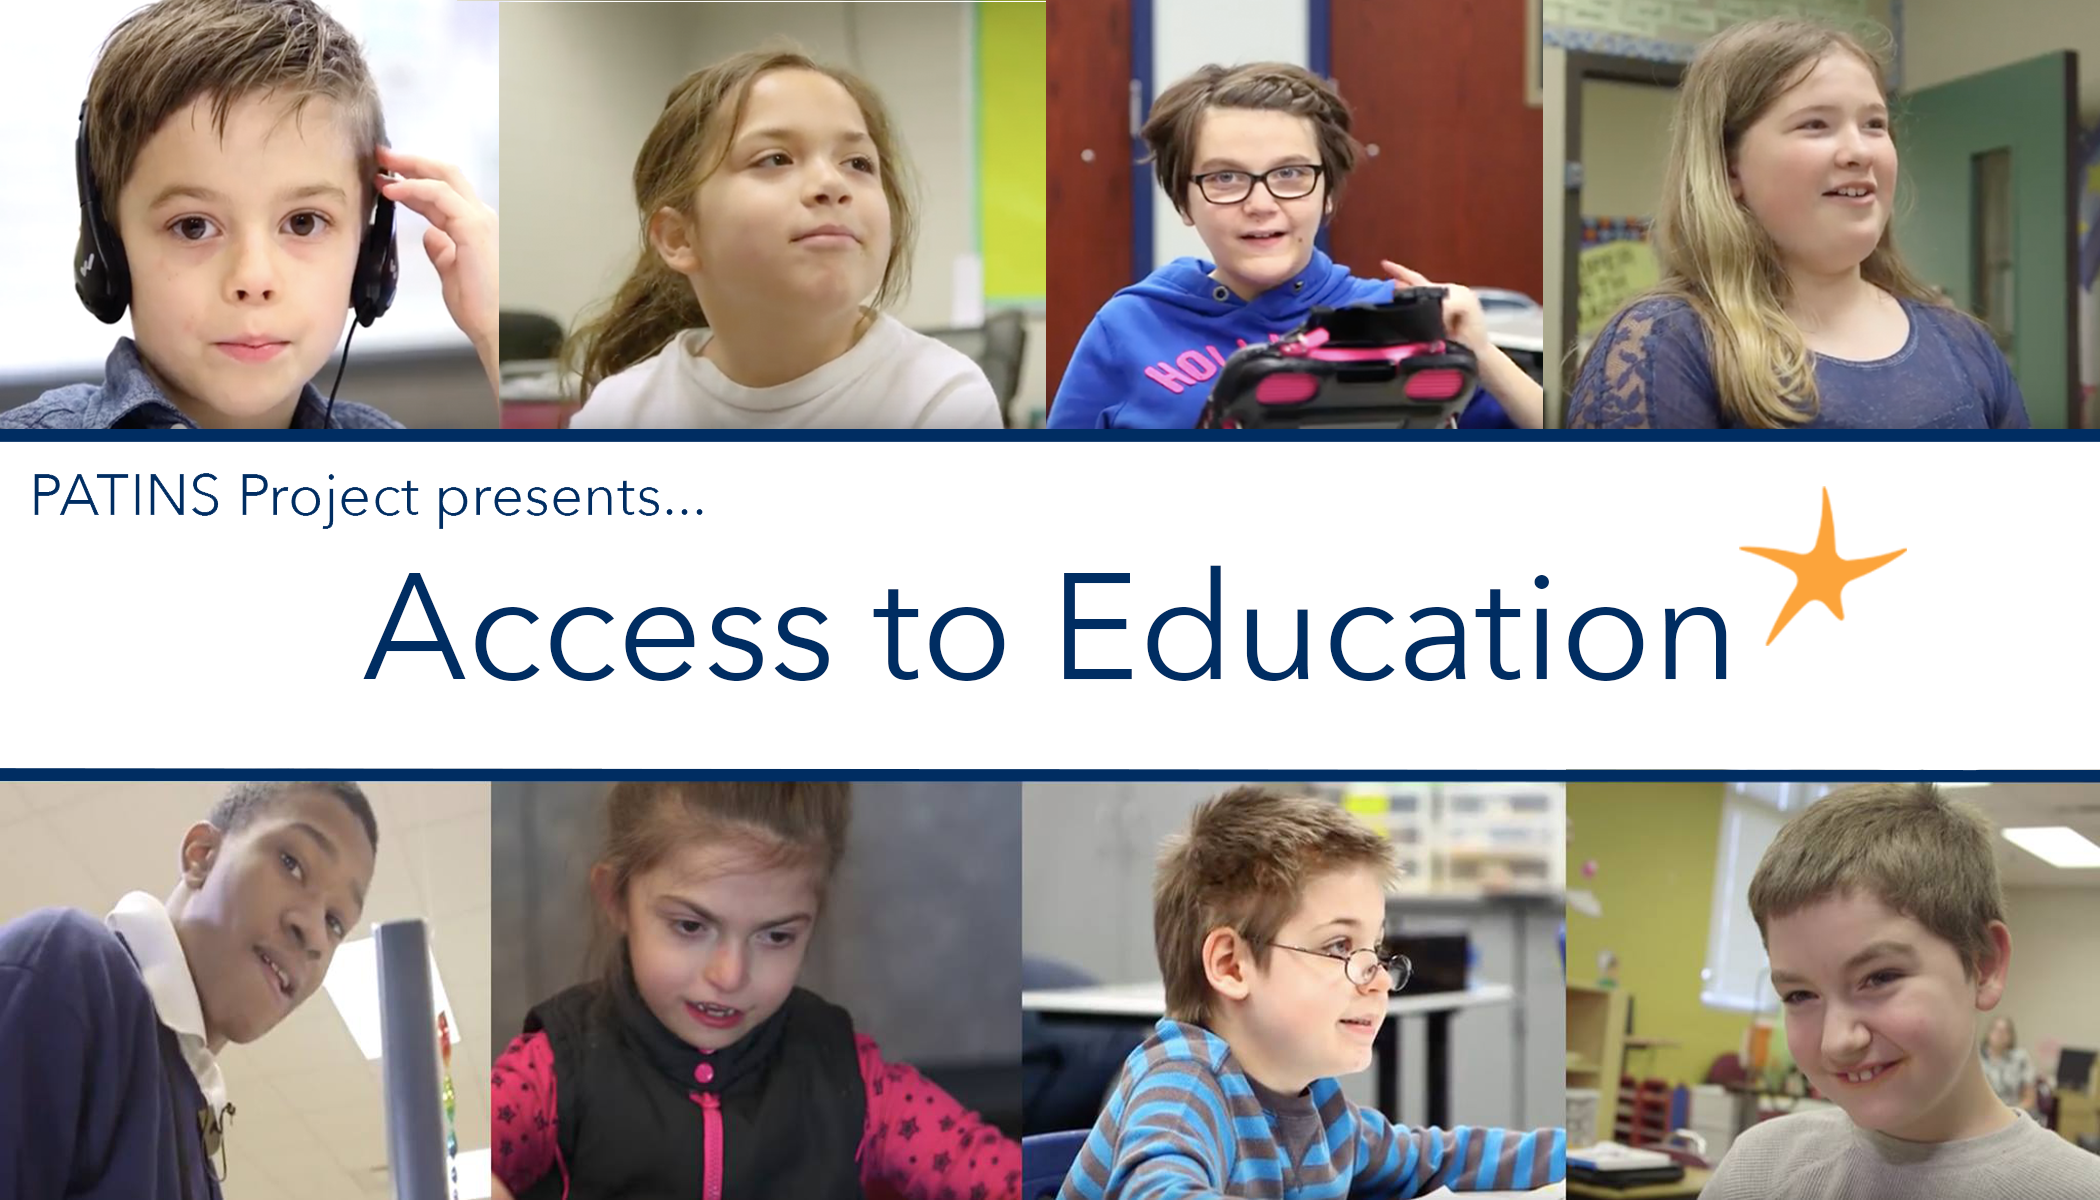 PATINS Project presents Access to Education logo with student portraits